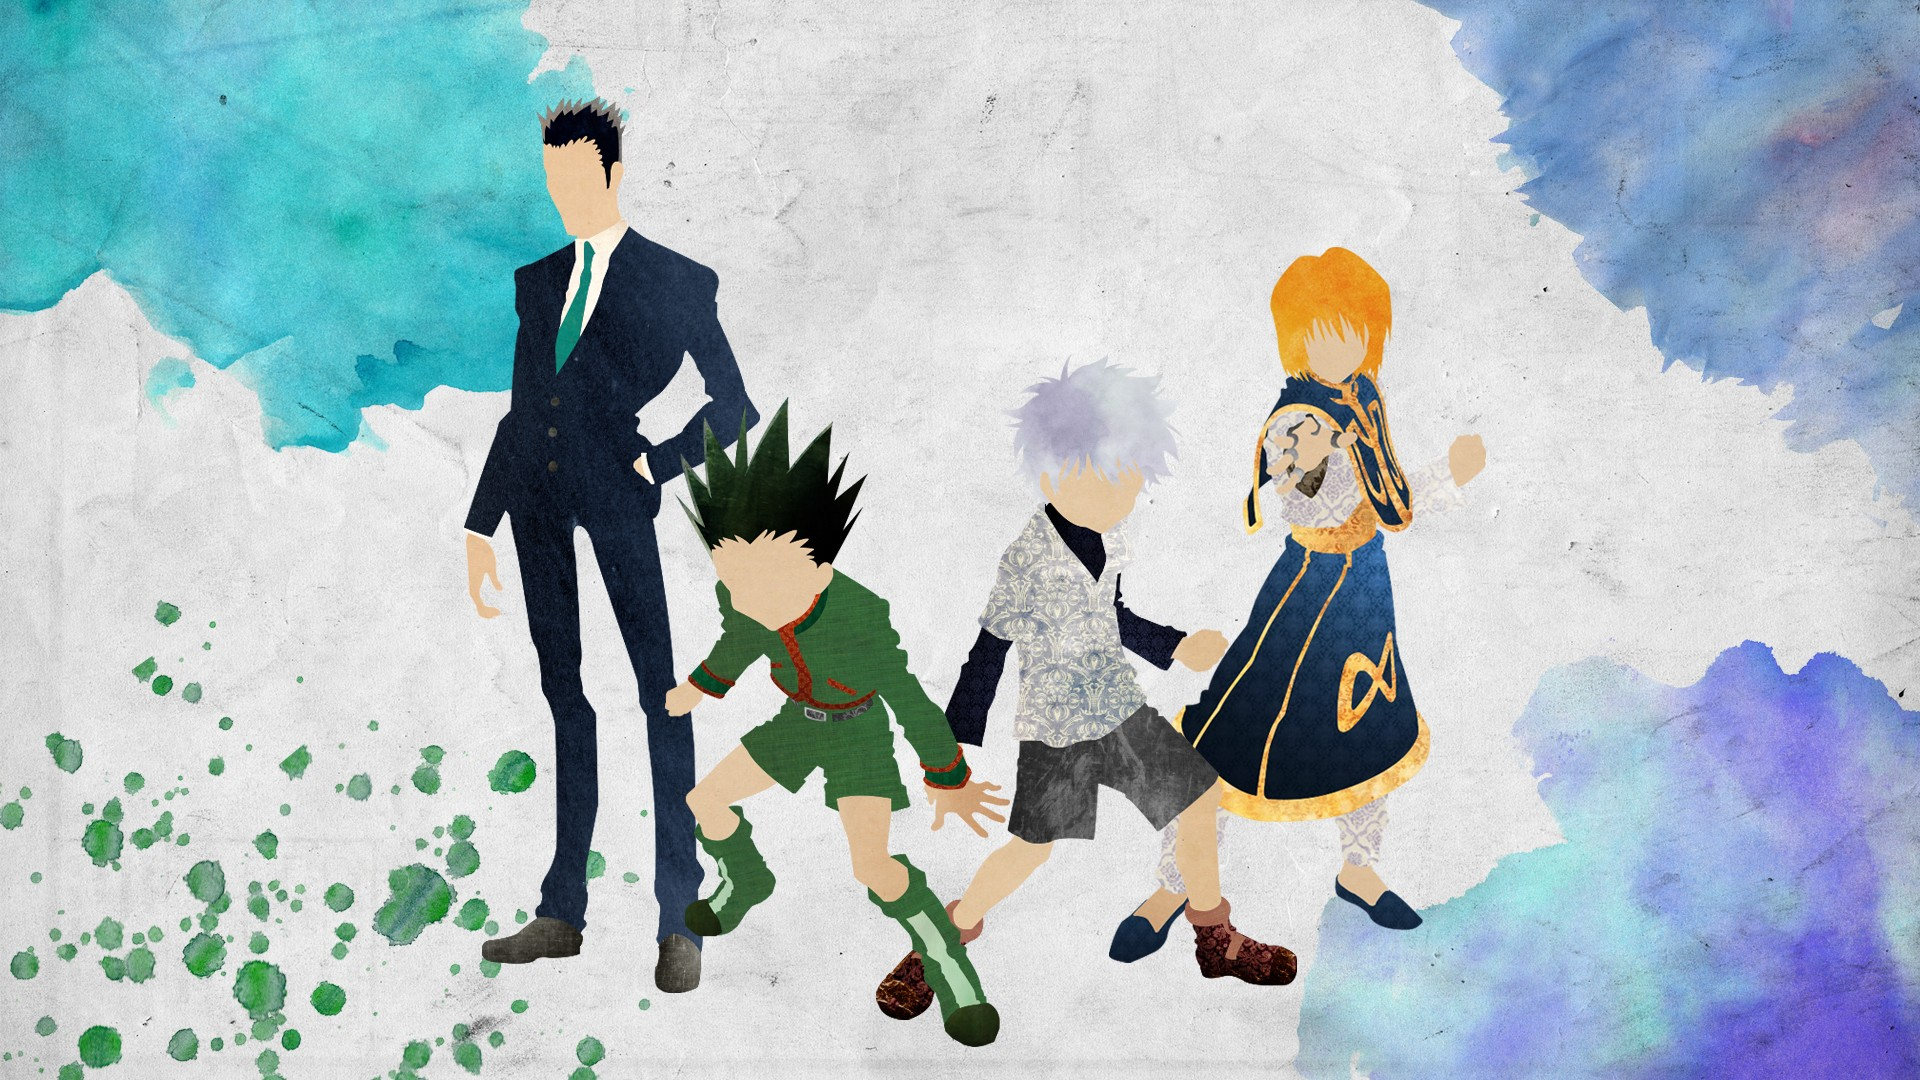 5 hunter x hunter wallpapers for android mobile, nokia 230, nokia 215, samsung xcover 550, lg g350 in 240x320 resolution, background,photos and images of. Hunter x Hunter wallpaper ·① Download free cool full HD ...